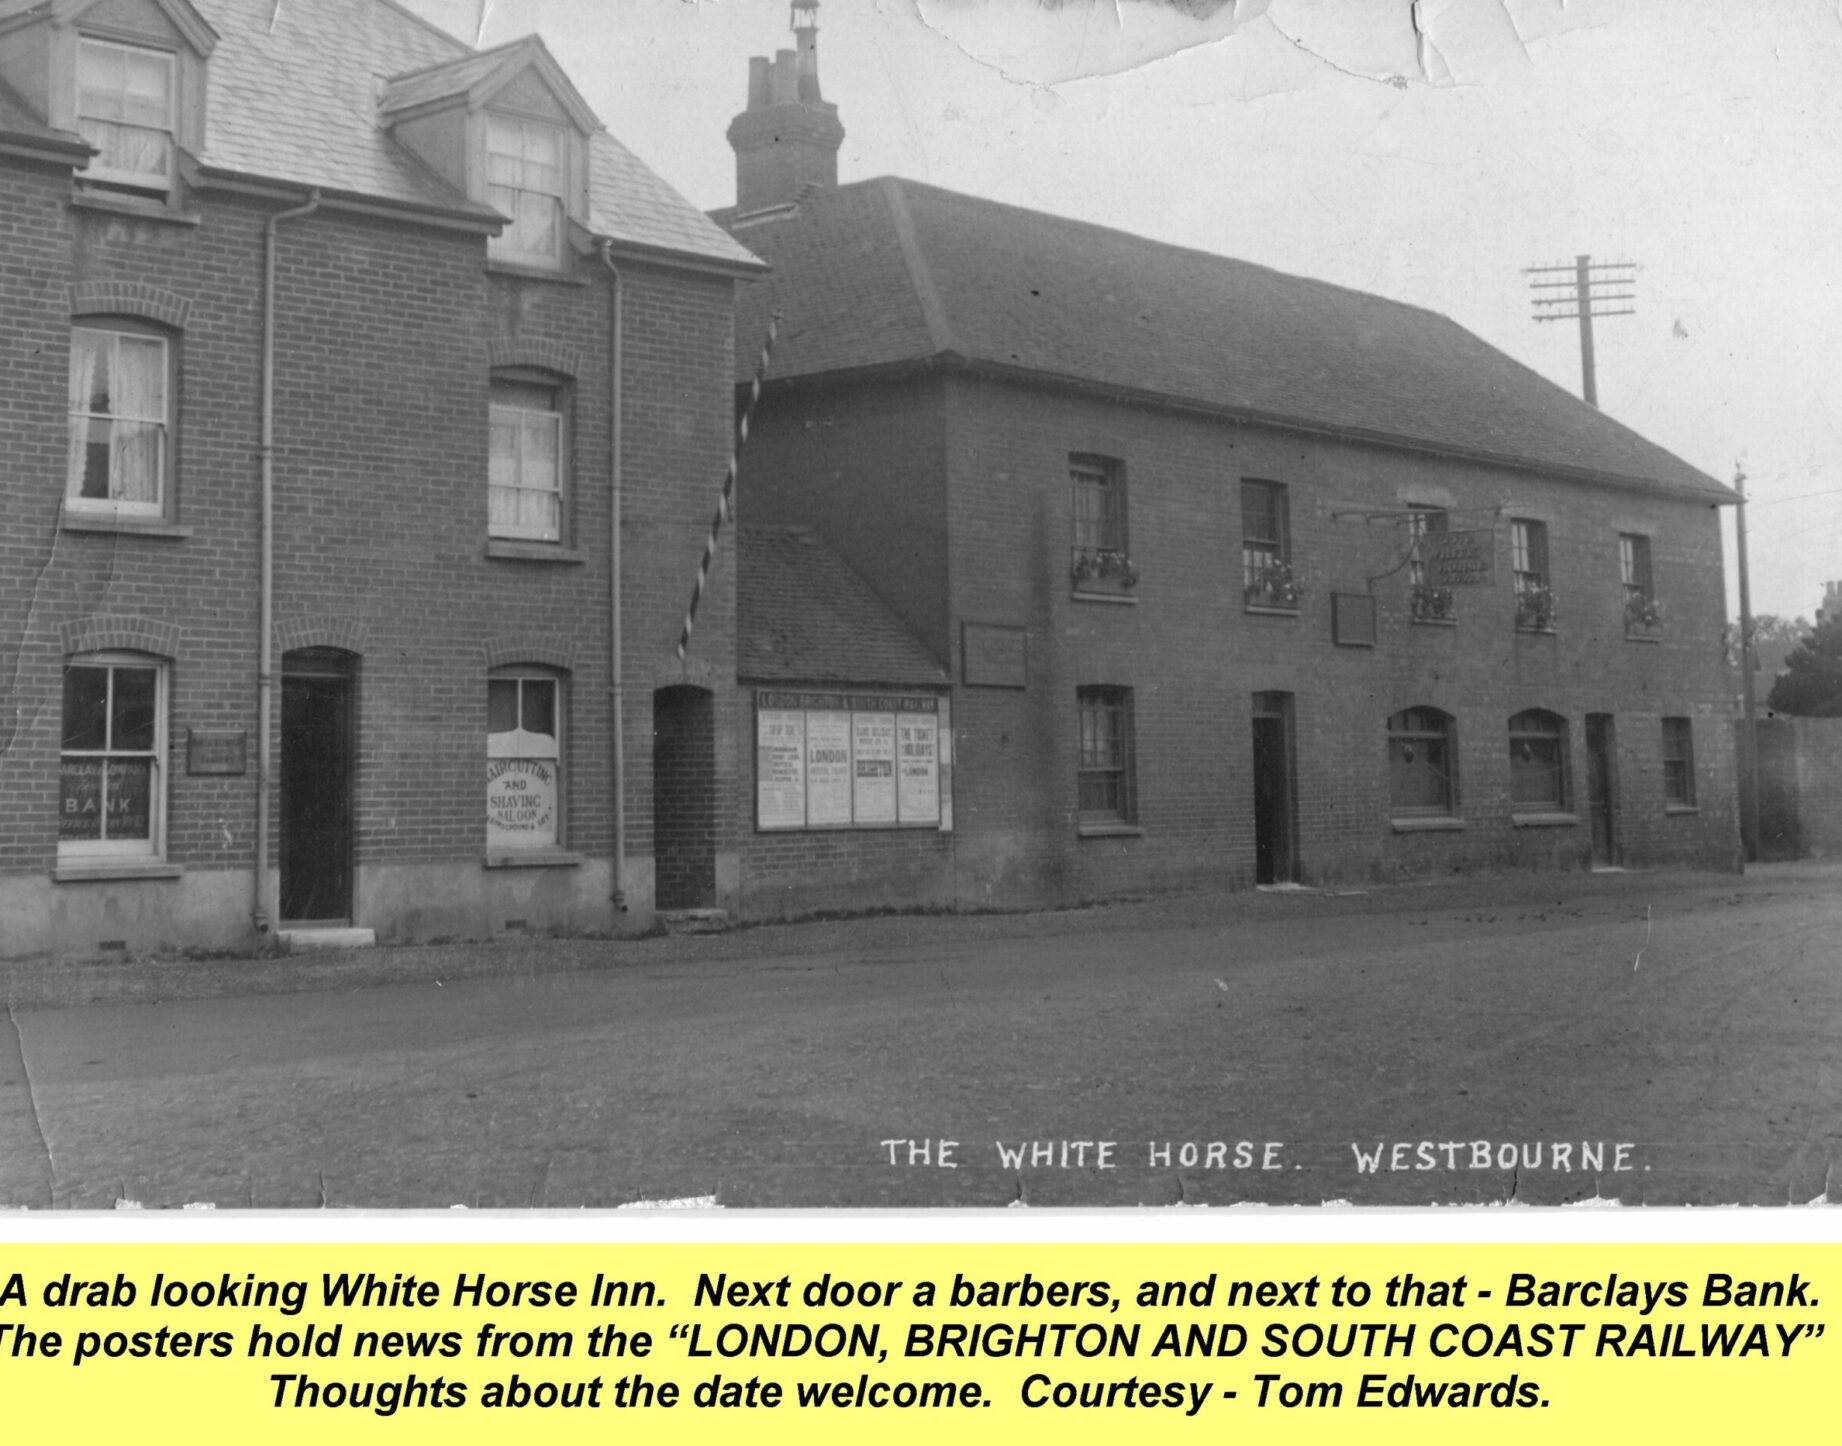 WESTBOURNE HISTORY PHOTO,SQUARE, Barclay, barber white horse SQUARE, GROCER, TREE, COMBER. MANCHIP, COUNTRY STORE, CENTRA